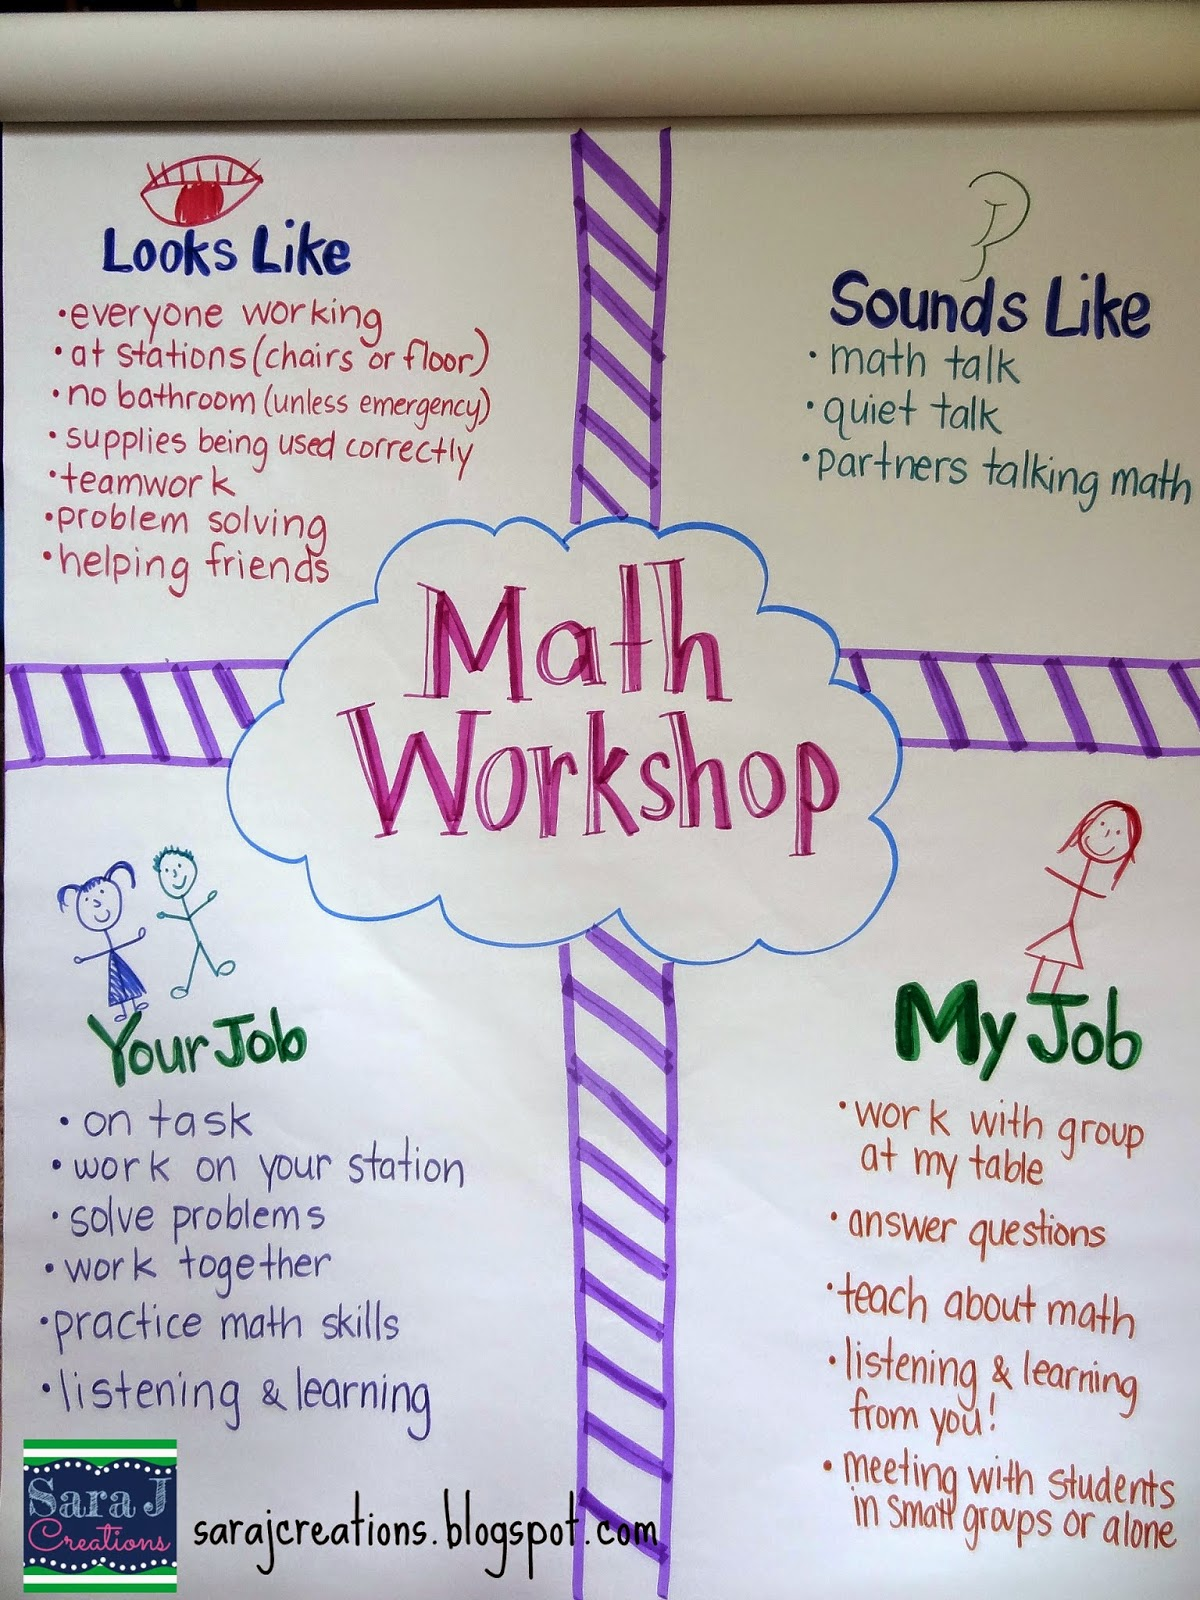 favorite math teacher essays Check out our top free essays on math is my favorite subject to help you write my math teacher told me about that quote when i math is my favorite subject.